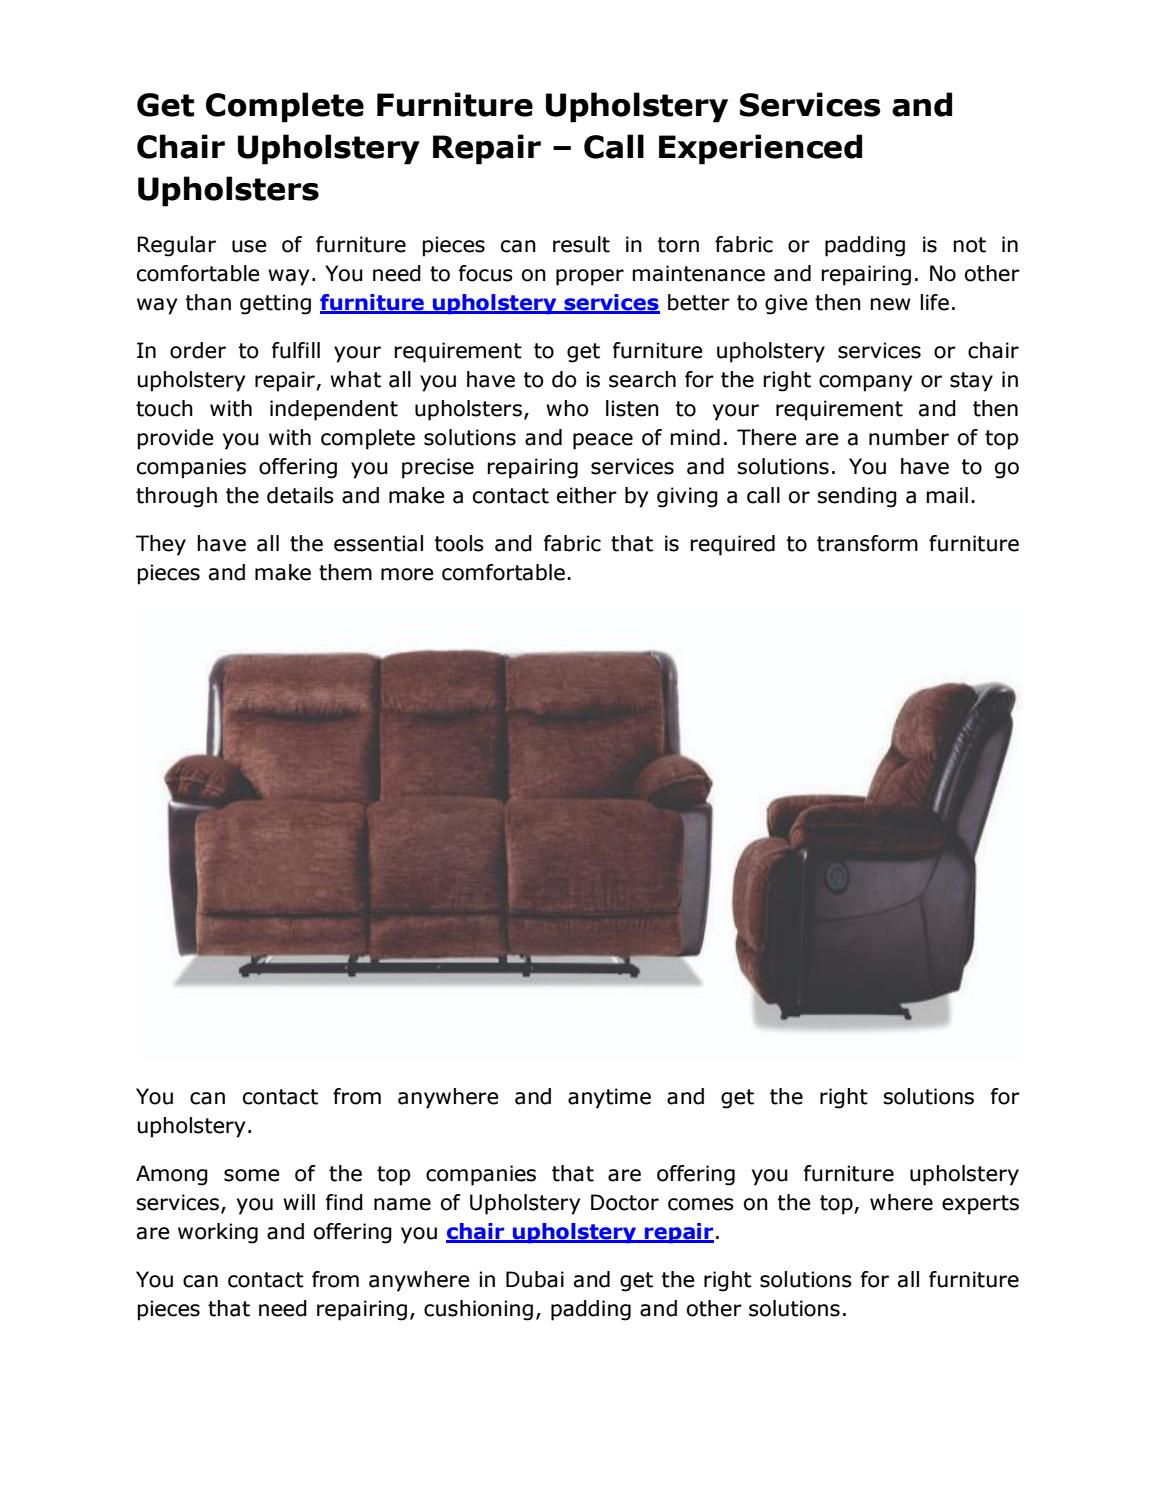 Get Complete Furniture Upholstery Services And Chair Upholstery Repair Call Experienced Upholsters By Upholstery Doctor Issuu